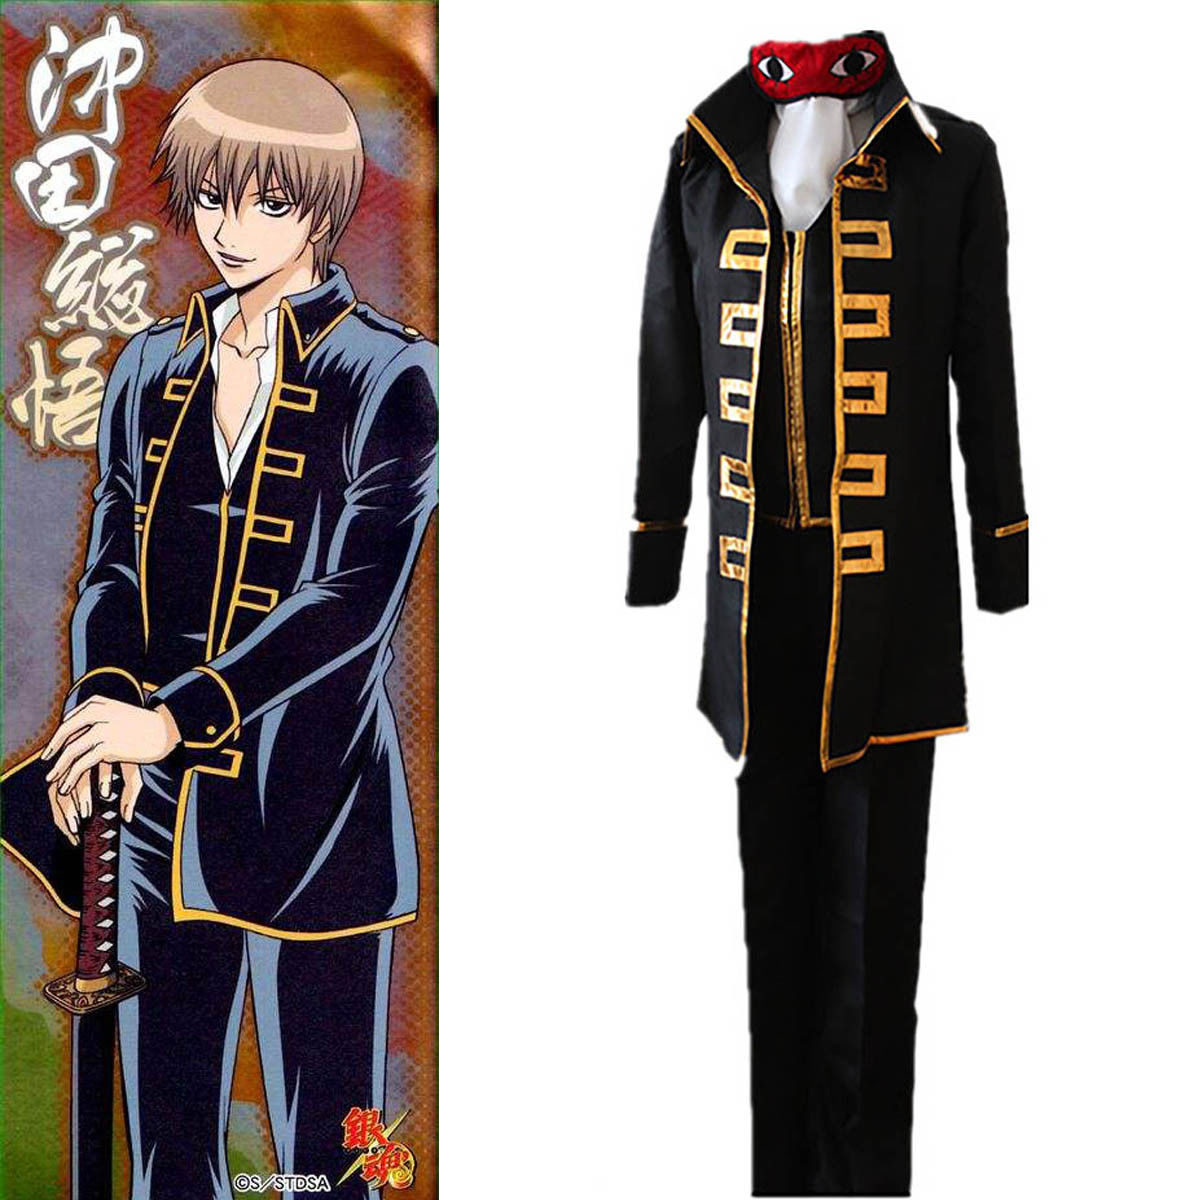 Honest Tokyo Anime Gintama Shinsengumi Team Cosplay Costume Silver Soul Okita Sougo Suits Anime Party Show Coser Driving A Roaring Trade